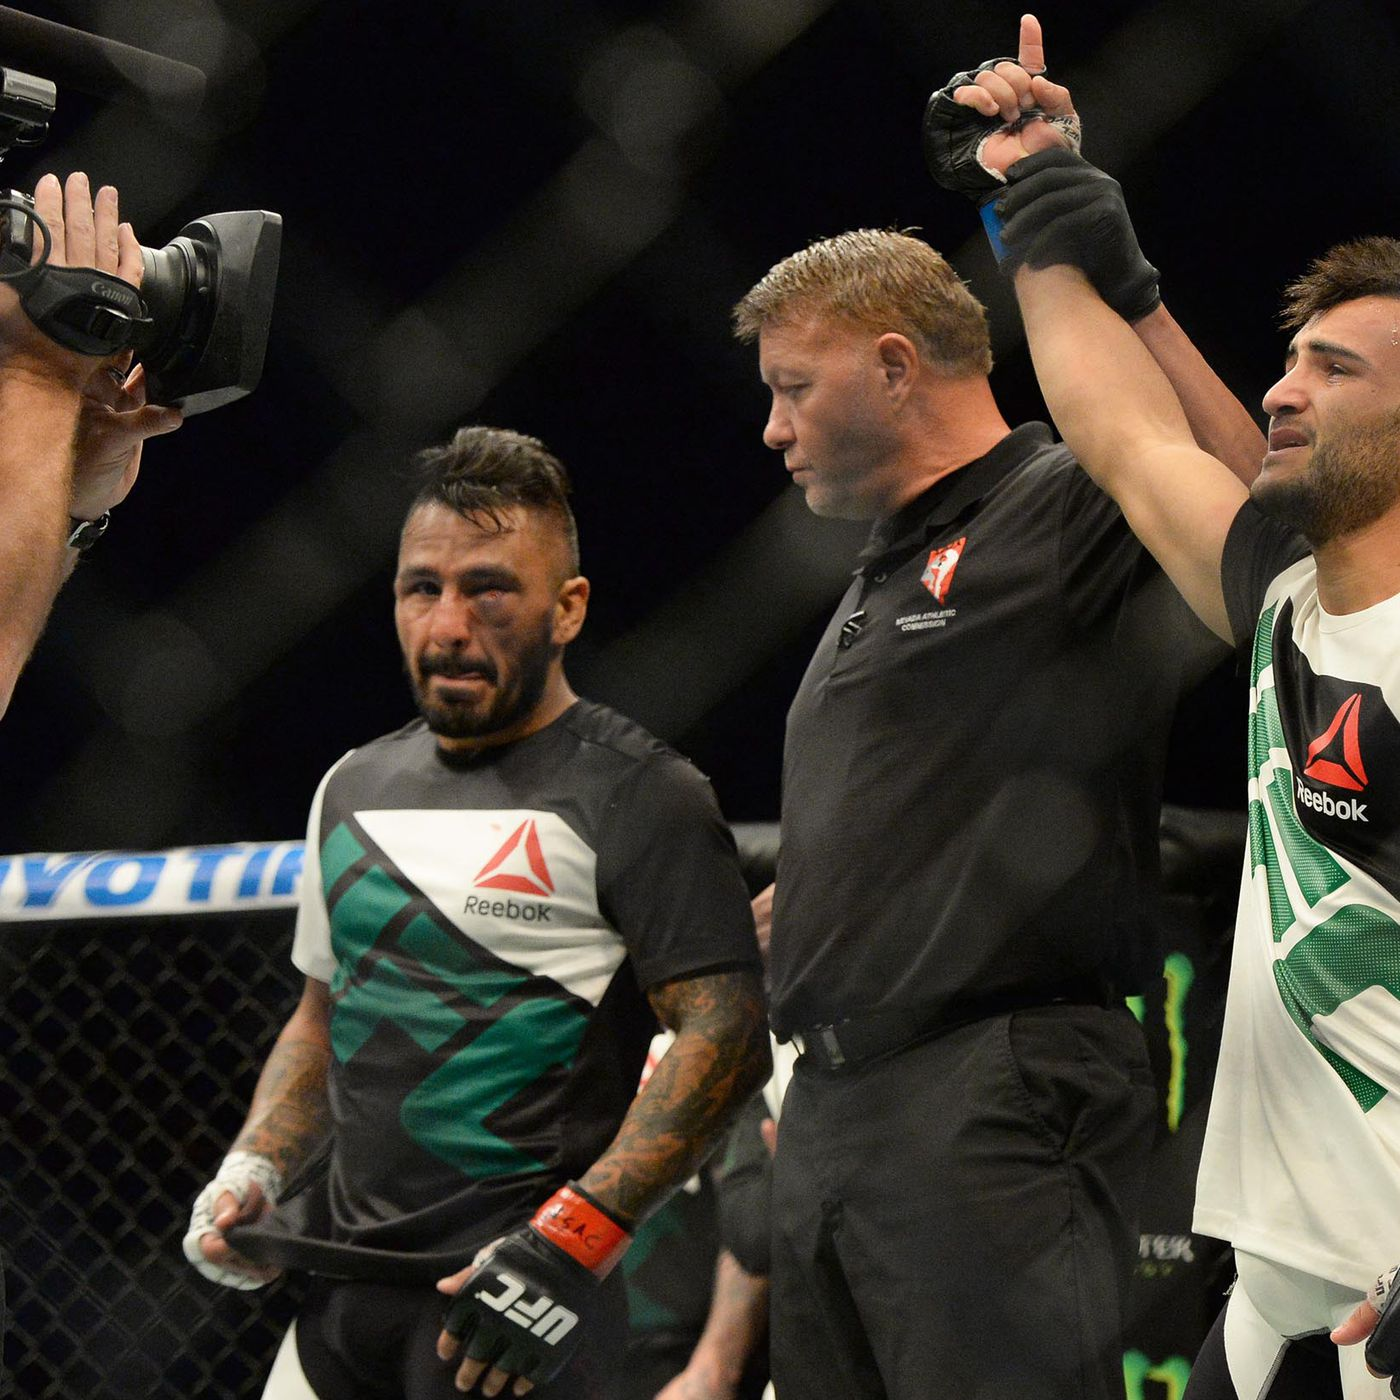 be96e1d5c2 The fighter reactions to UFC 191: Johnson vs. Dodson on Twitter ...